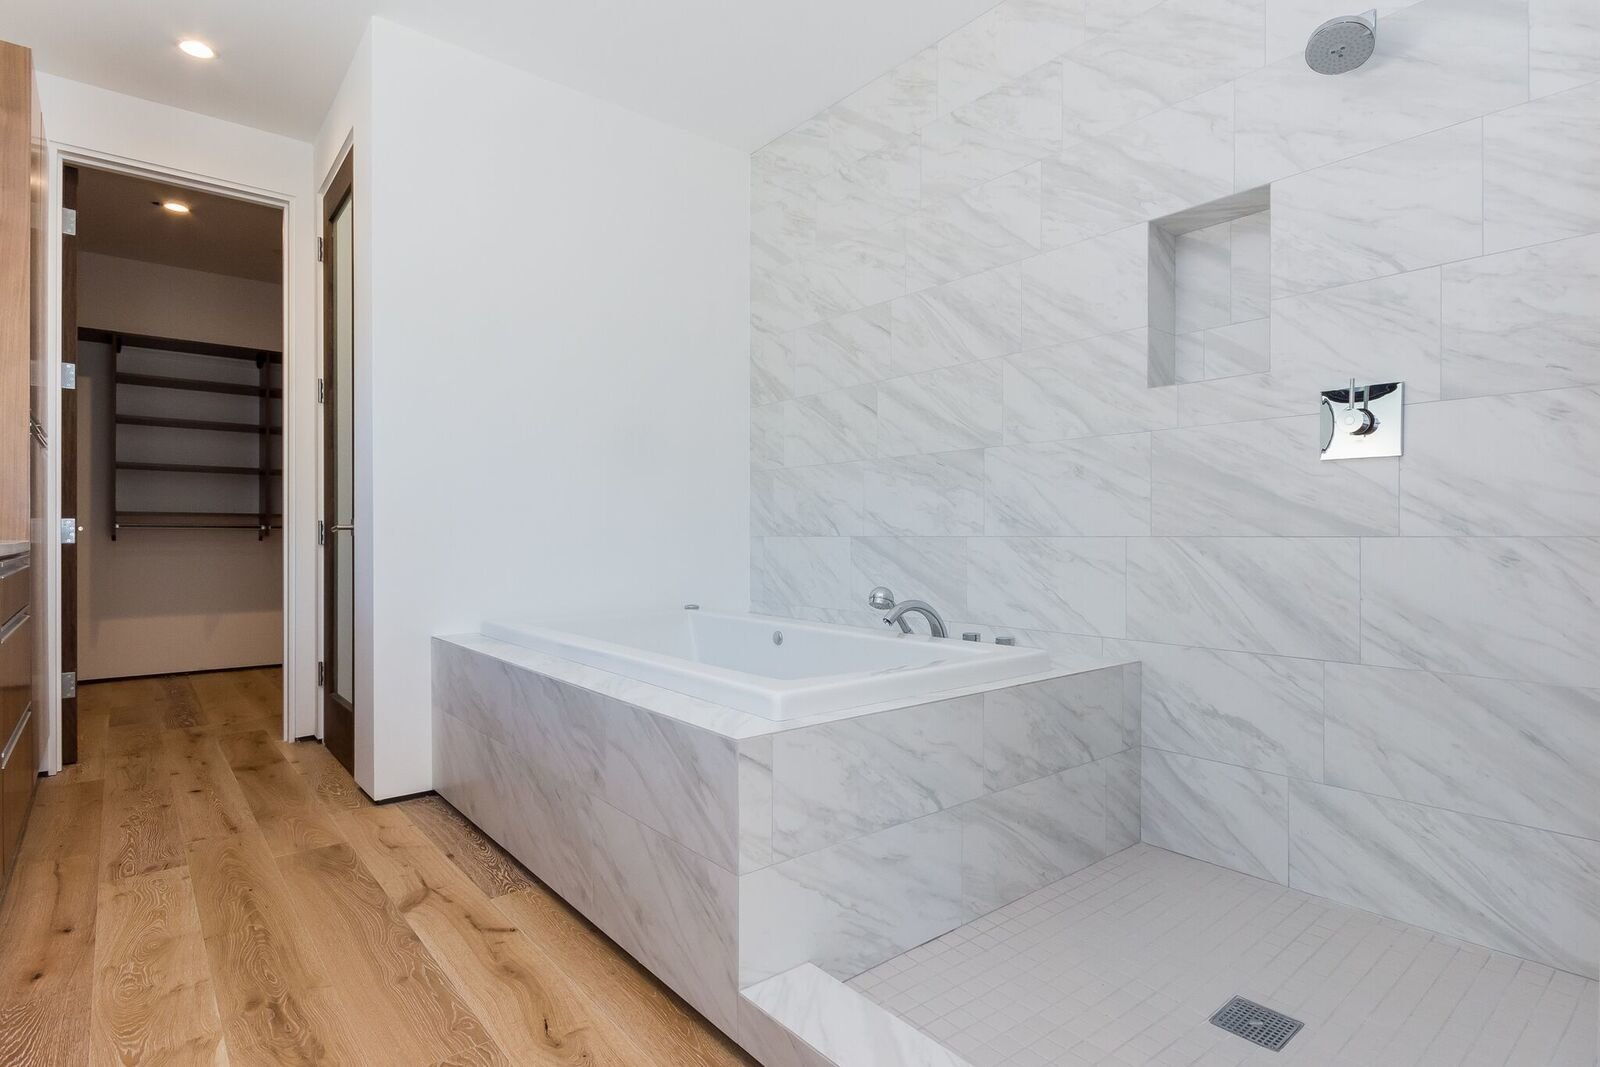 Bath, Medium Hardwood, Quartzite, Undermount, Drop In, Whirlpool, Full, Enclosed, Ceiling, Porcelain Tile, and One Piece Master Bath with dual shower heads including rain head / jet tub  Best Bath Enclosed Full One Piece Drop In Photos from Mammoth Modern House 1